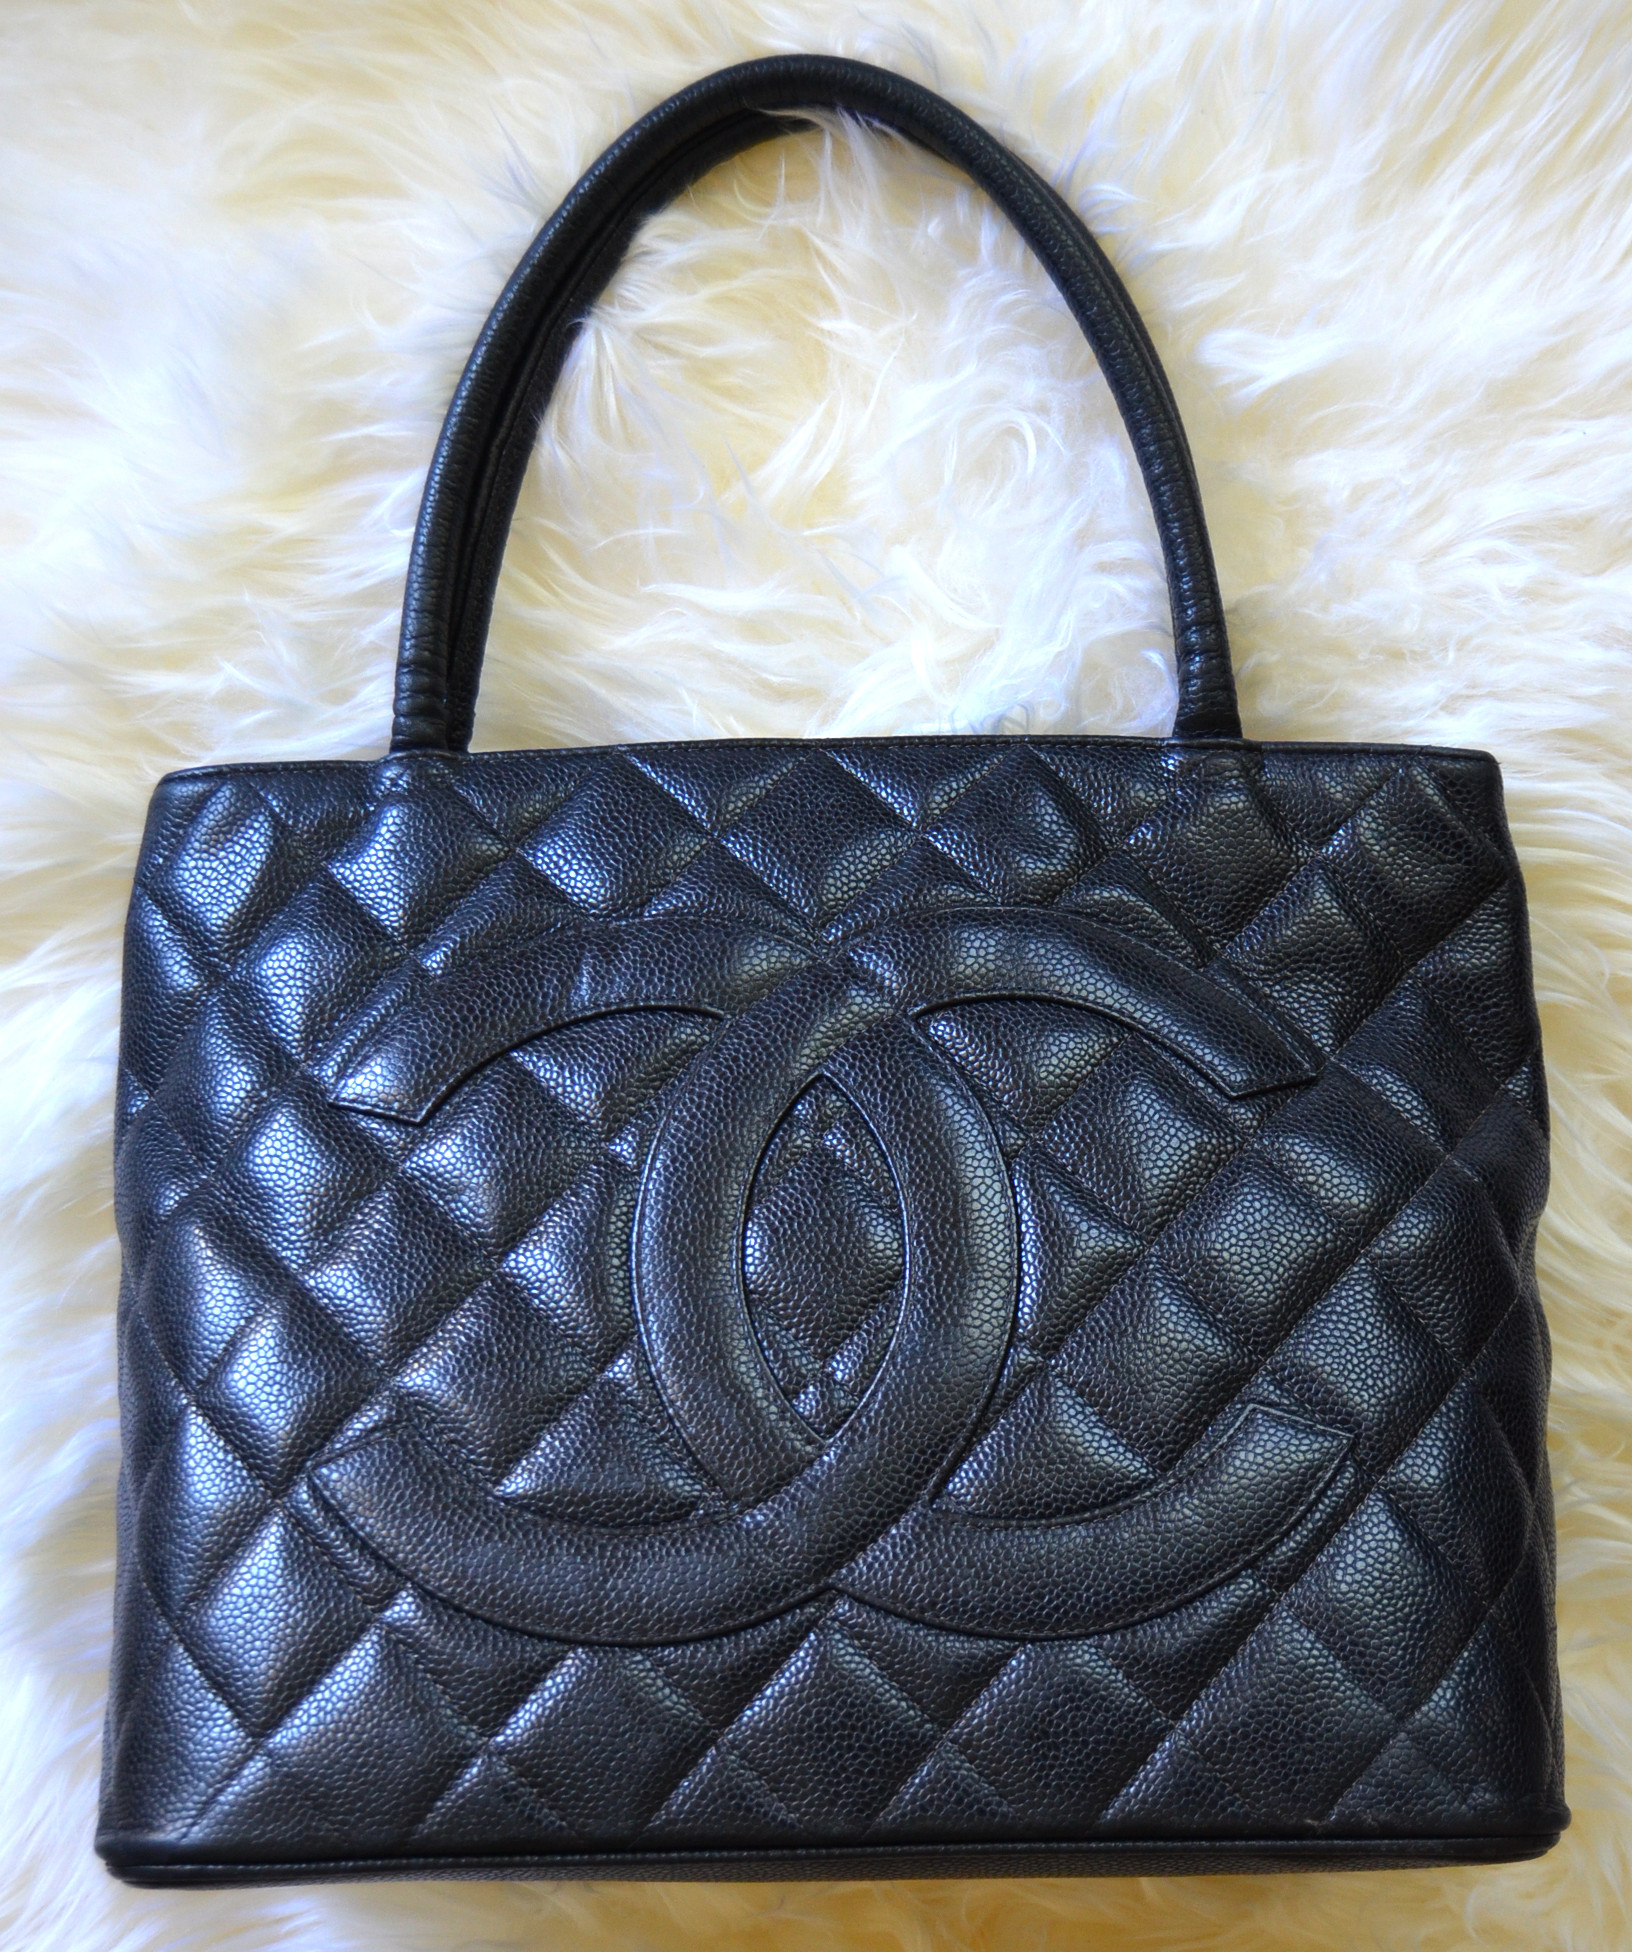 black caviar Chanel medallion bag